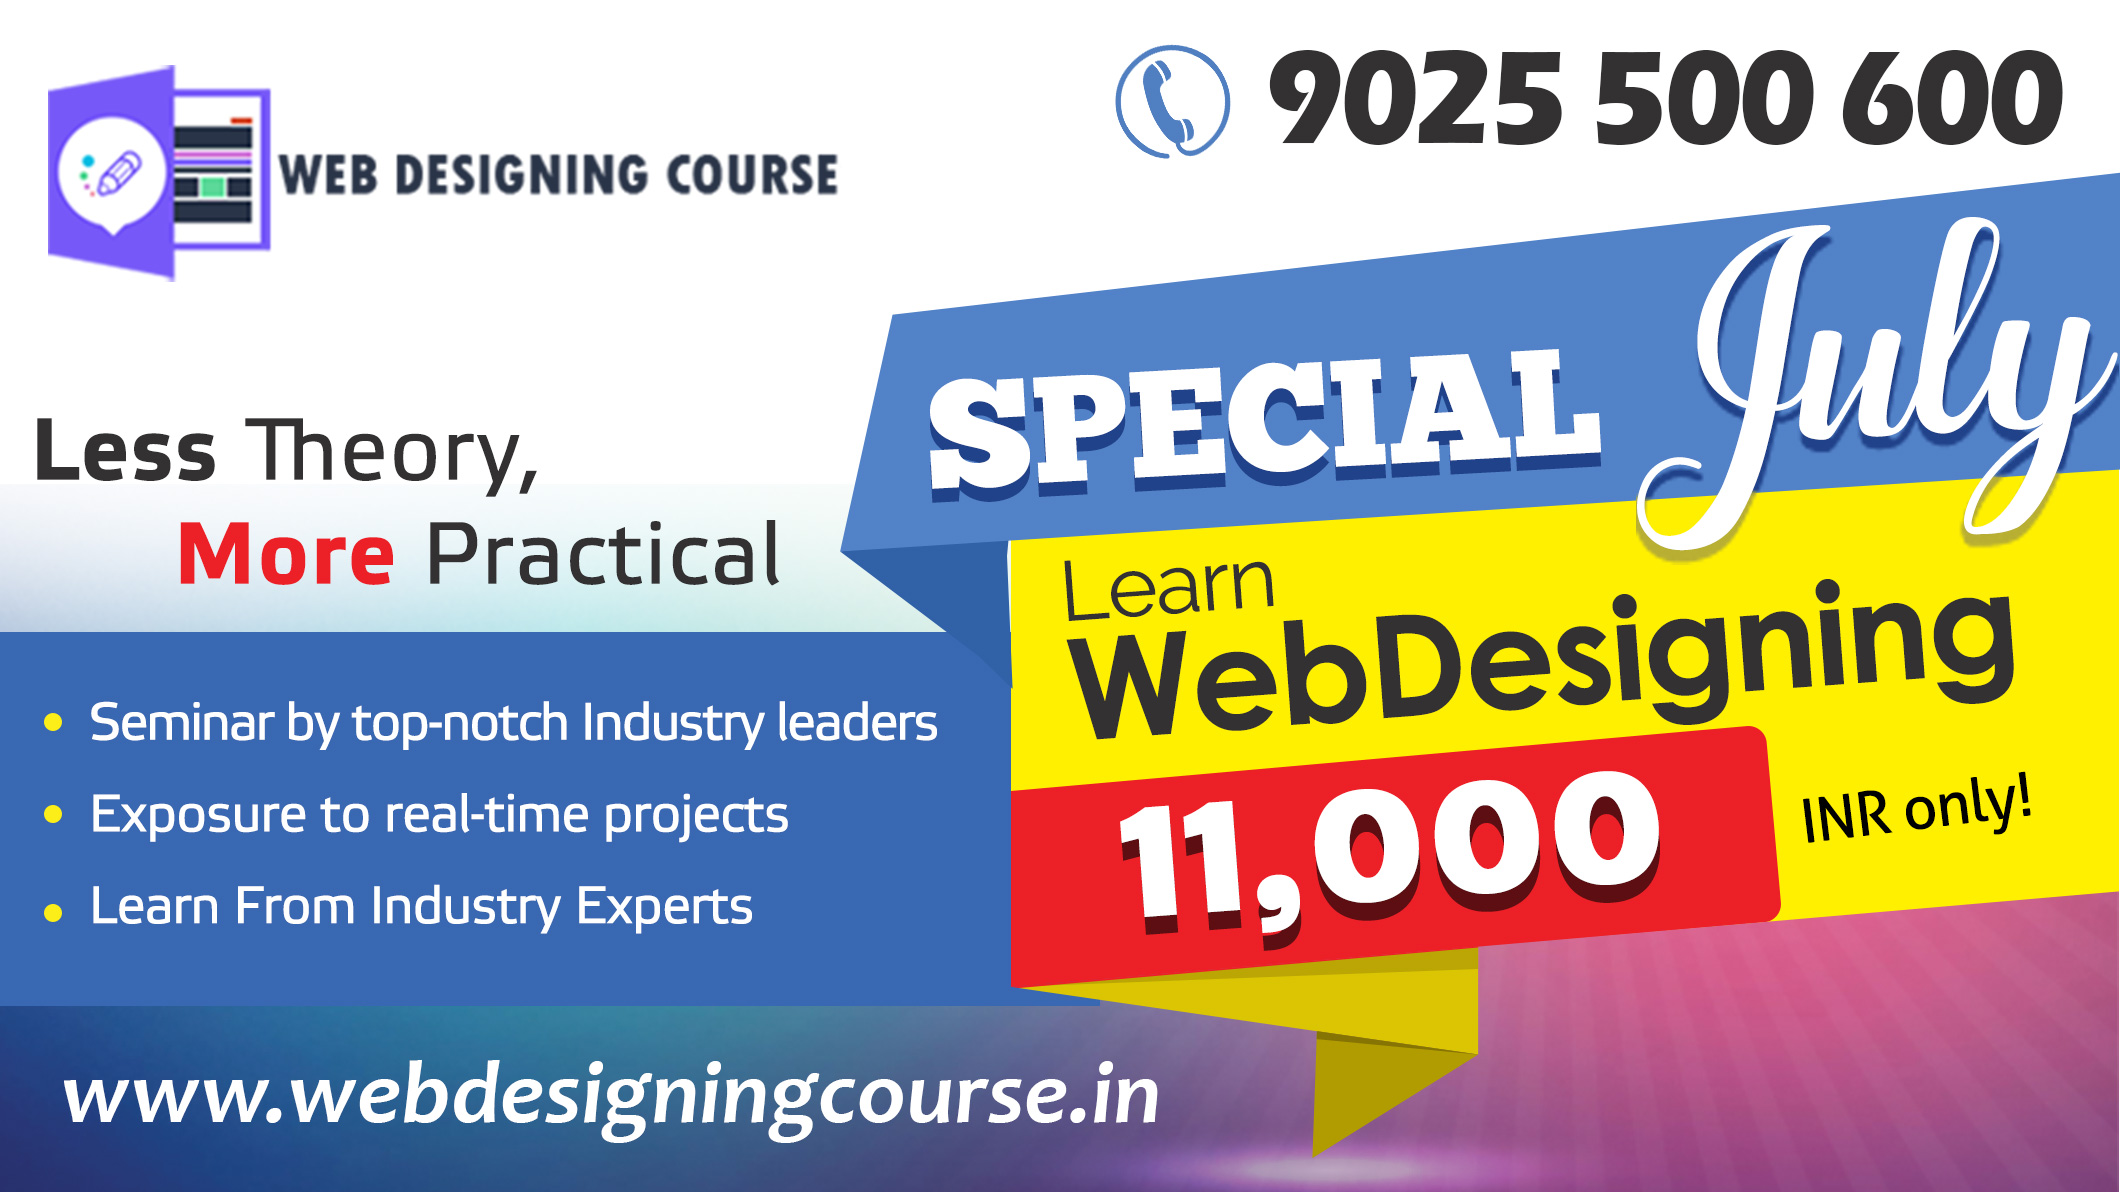 Web Designing Course Offer Special July